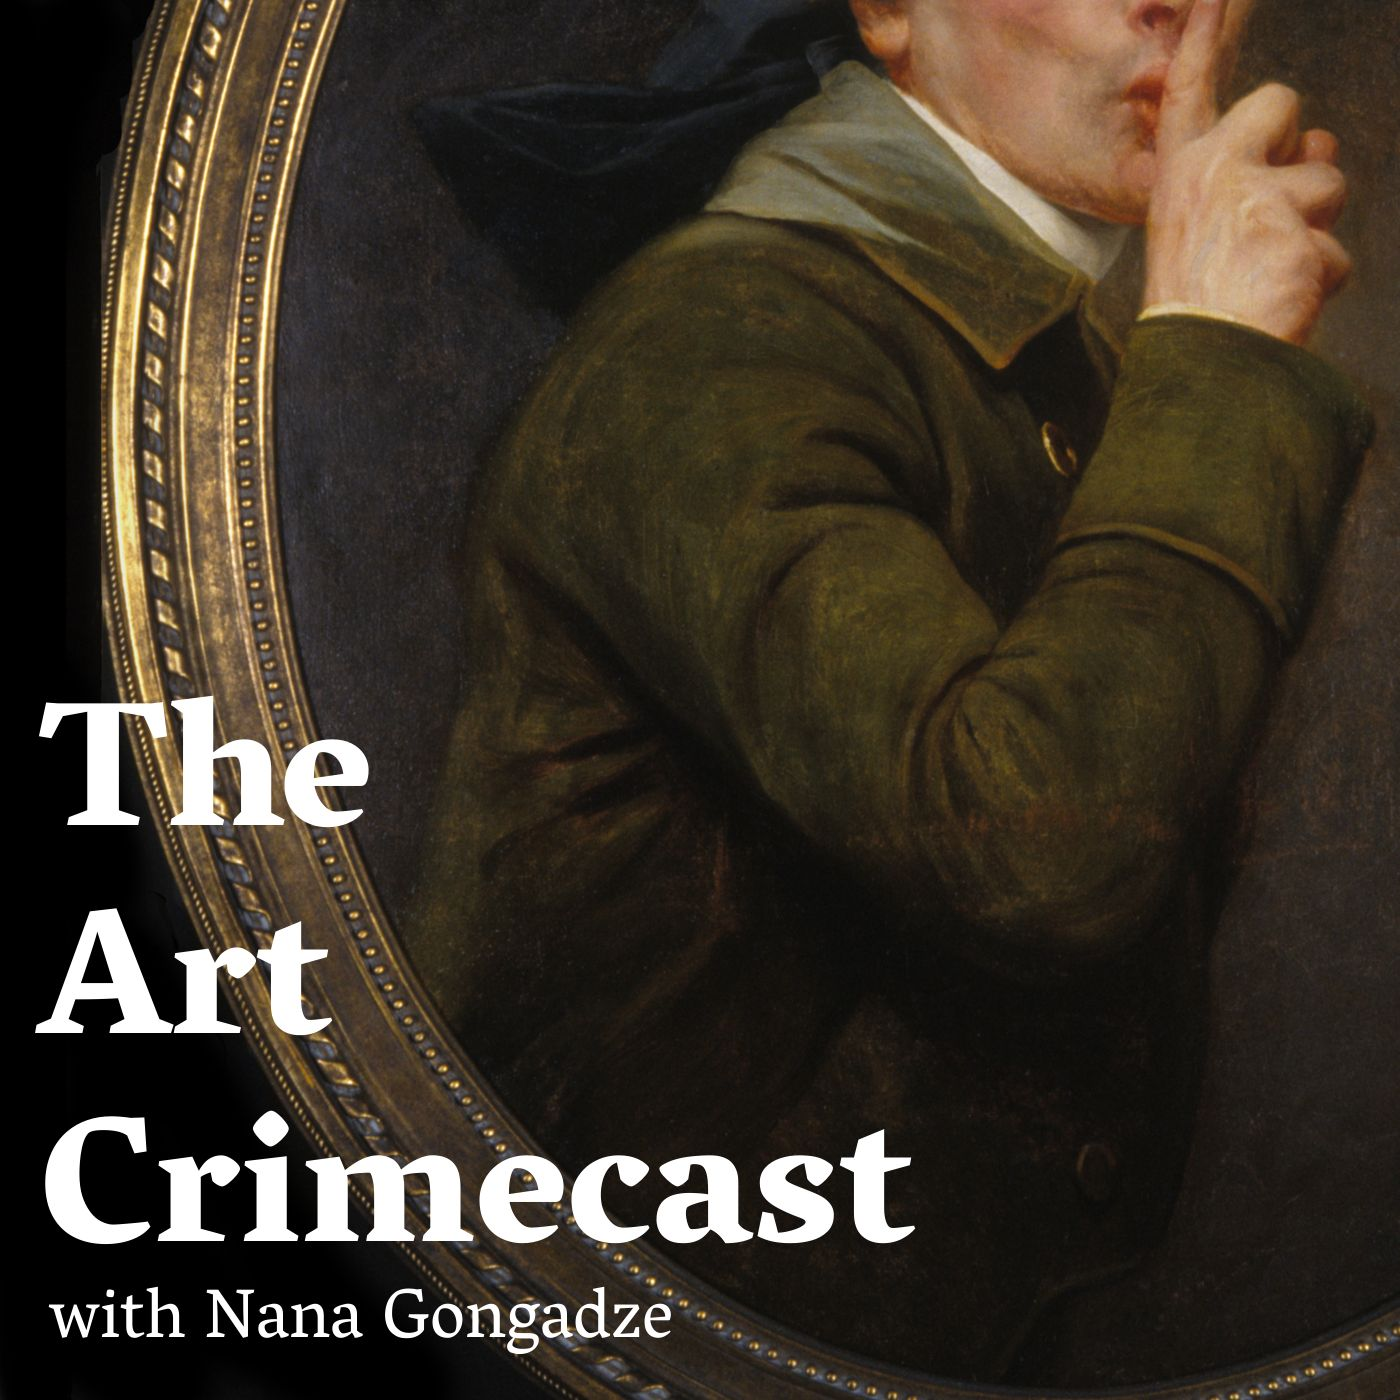 The Art Crimecast's stream on SoundCloud - Hear the world's sounds